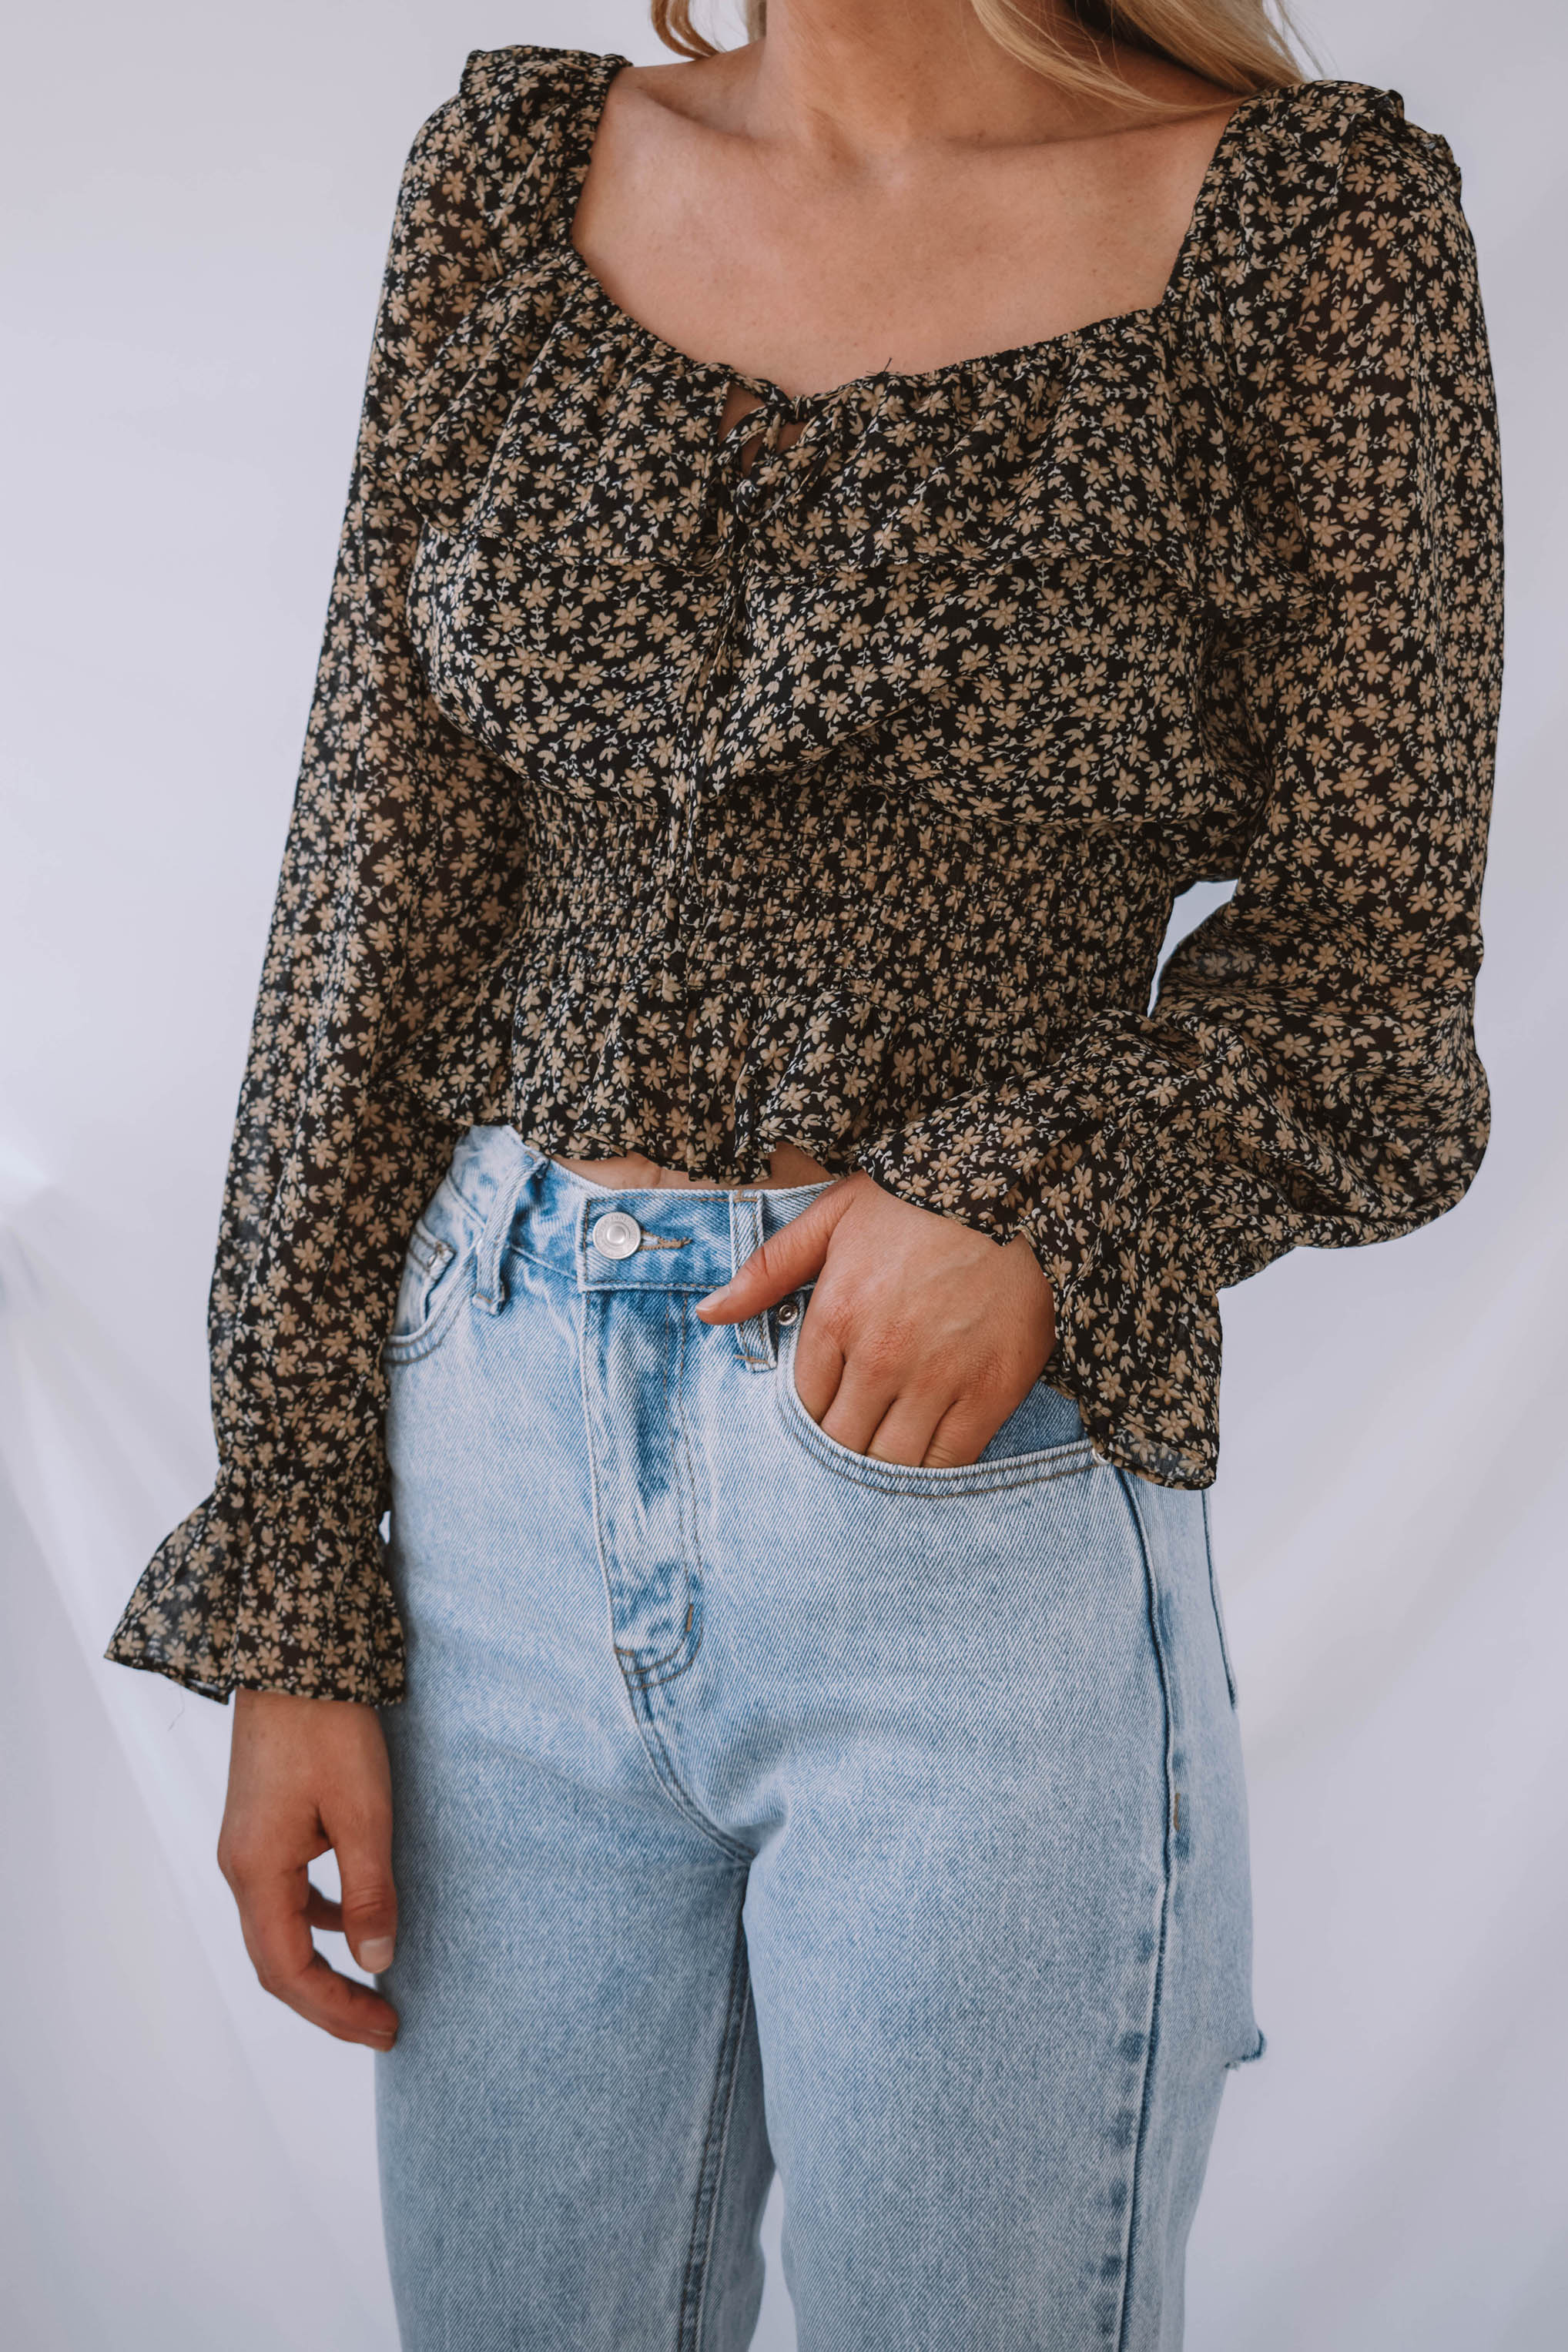 Rosemary Floral Square Neck Ruffle Blouse